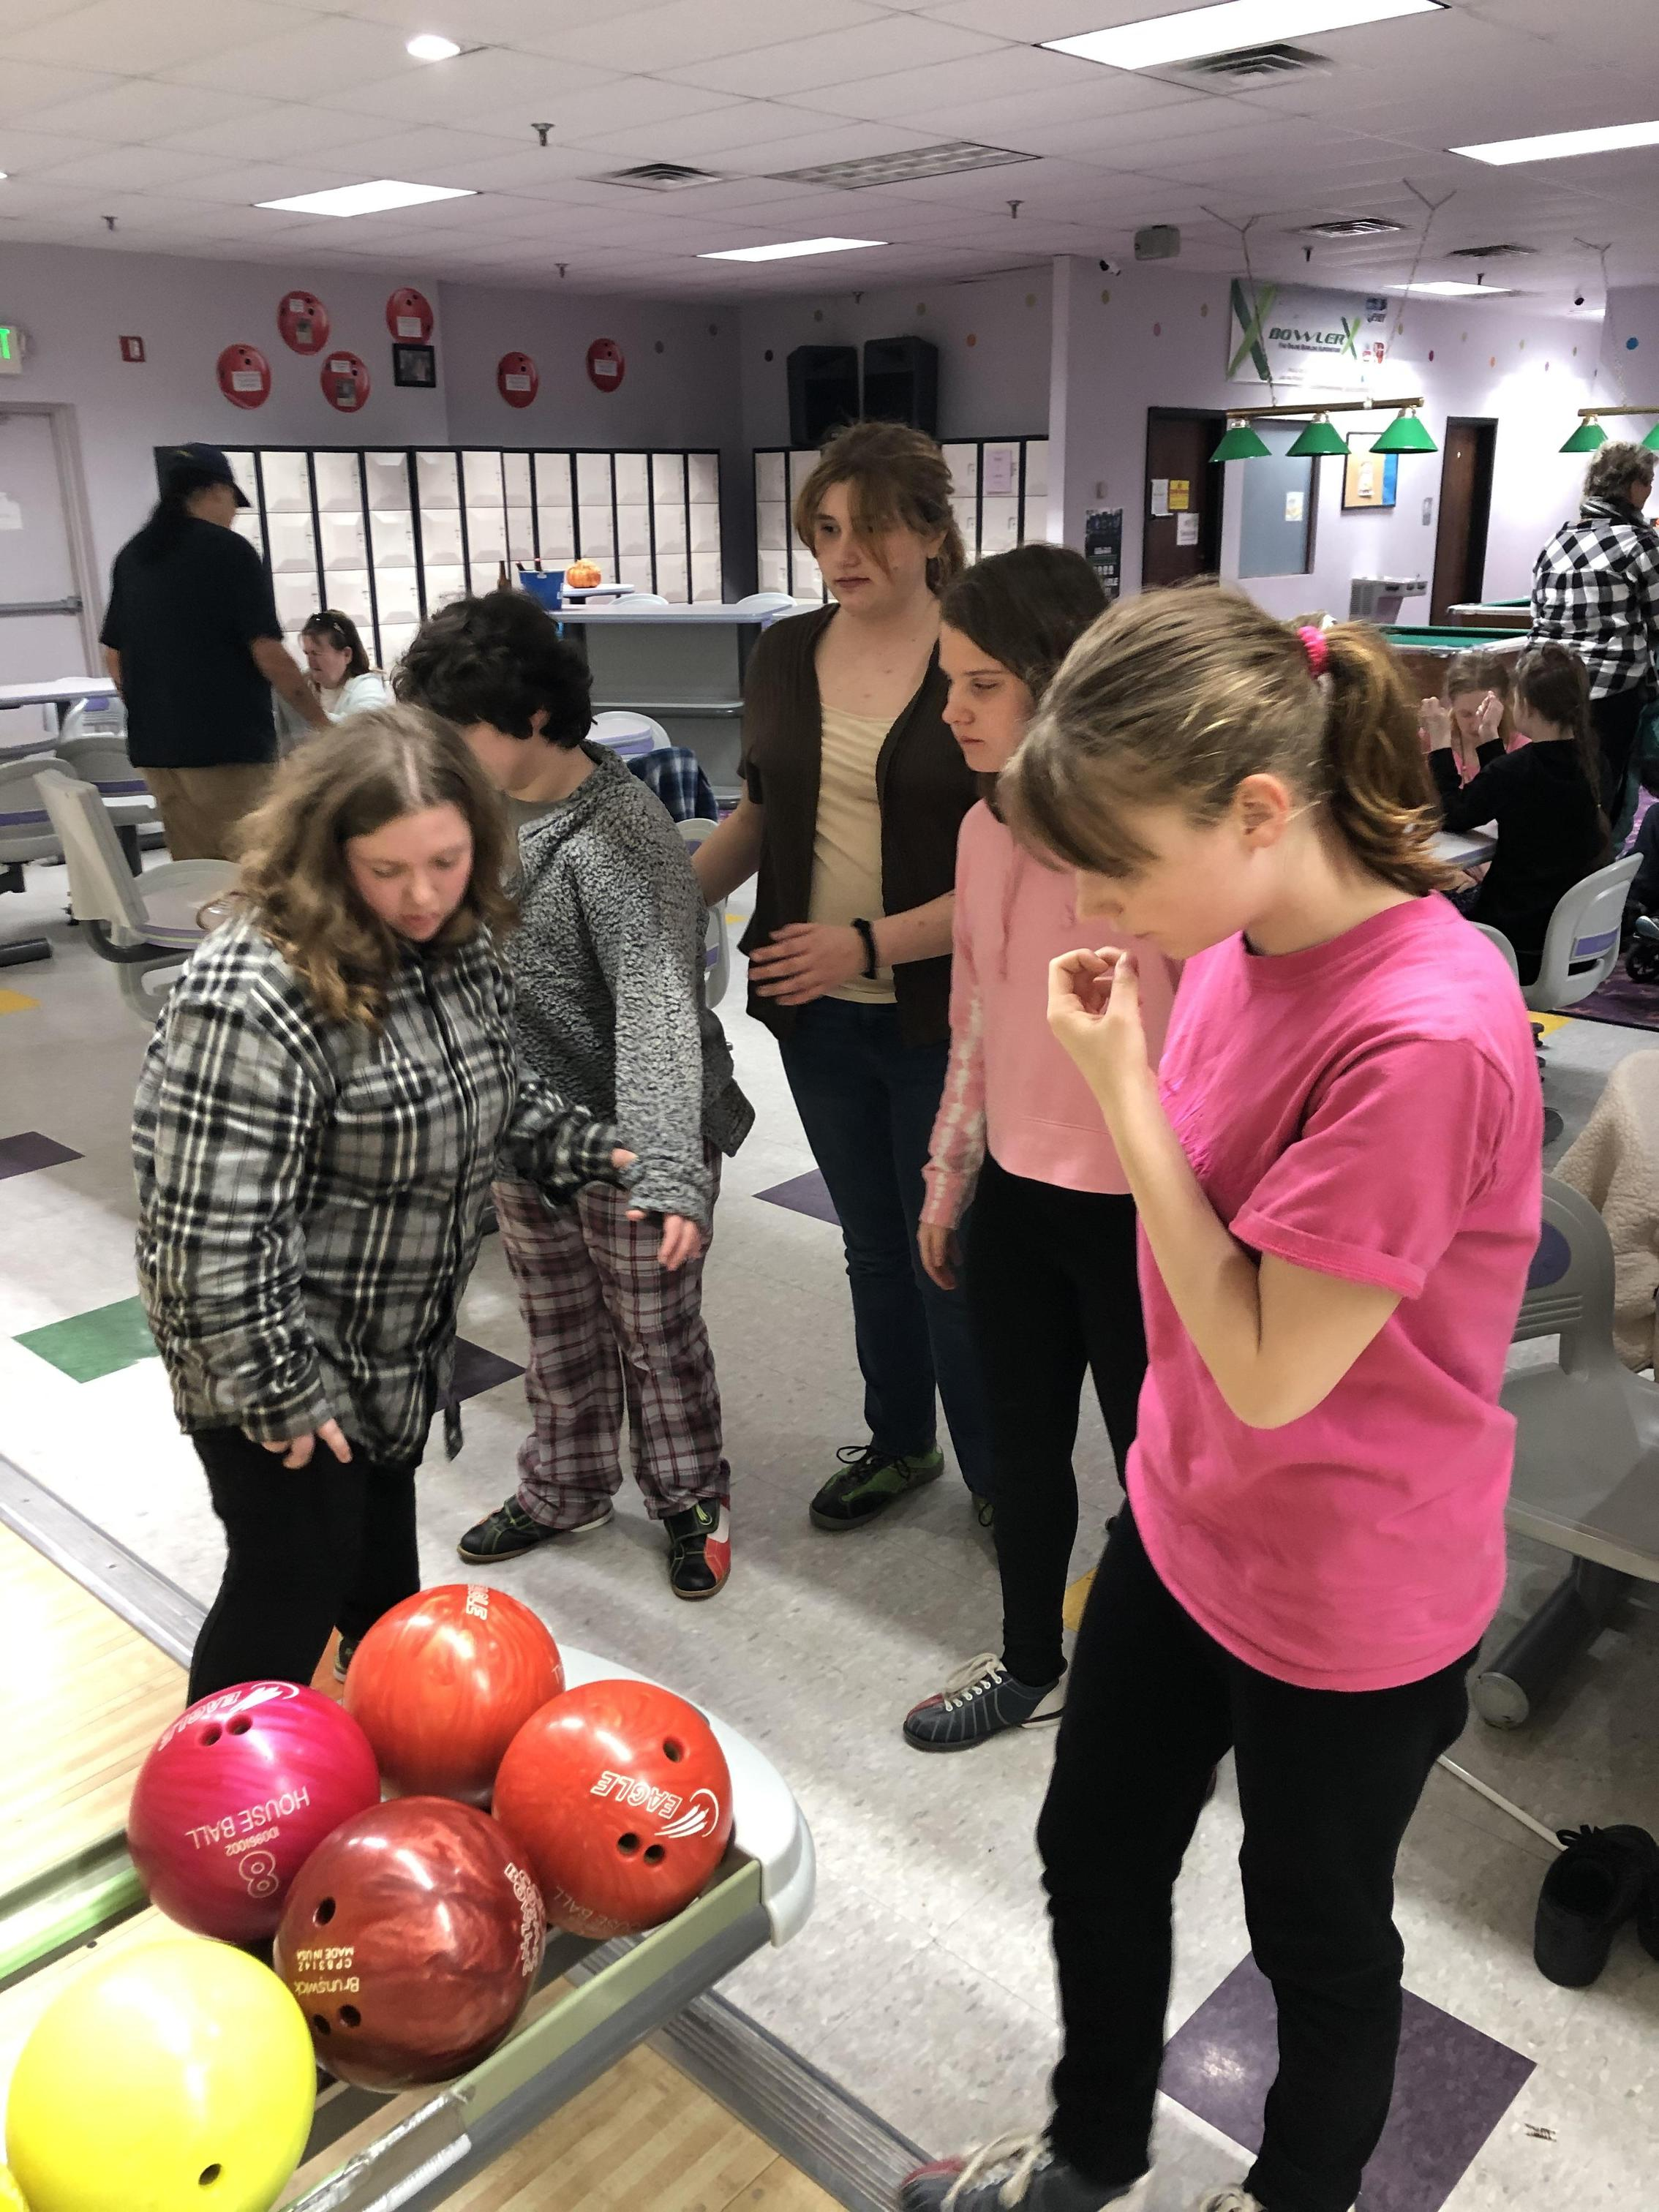 Students standing together around the Bowling ball return